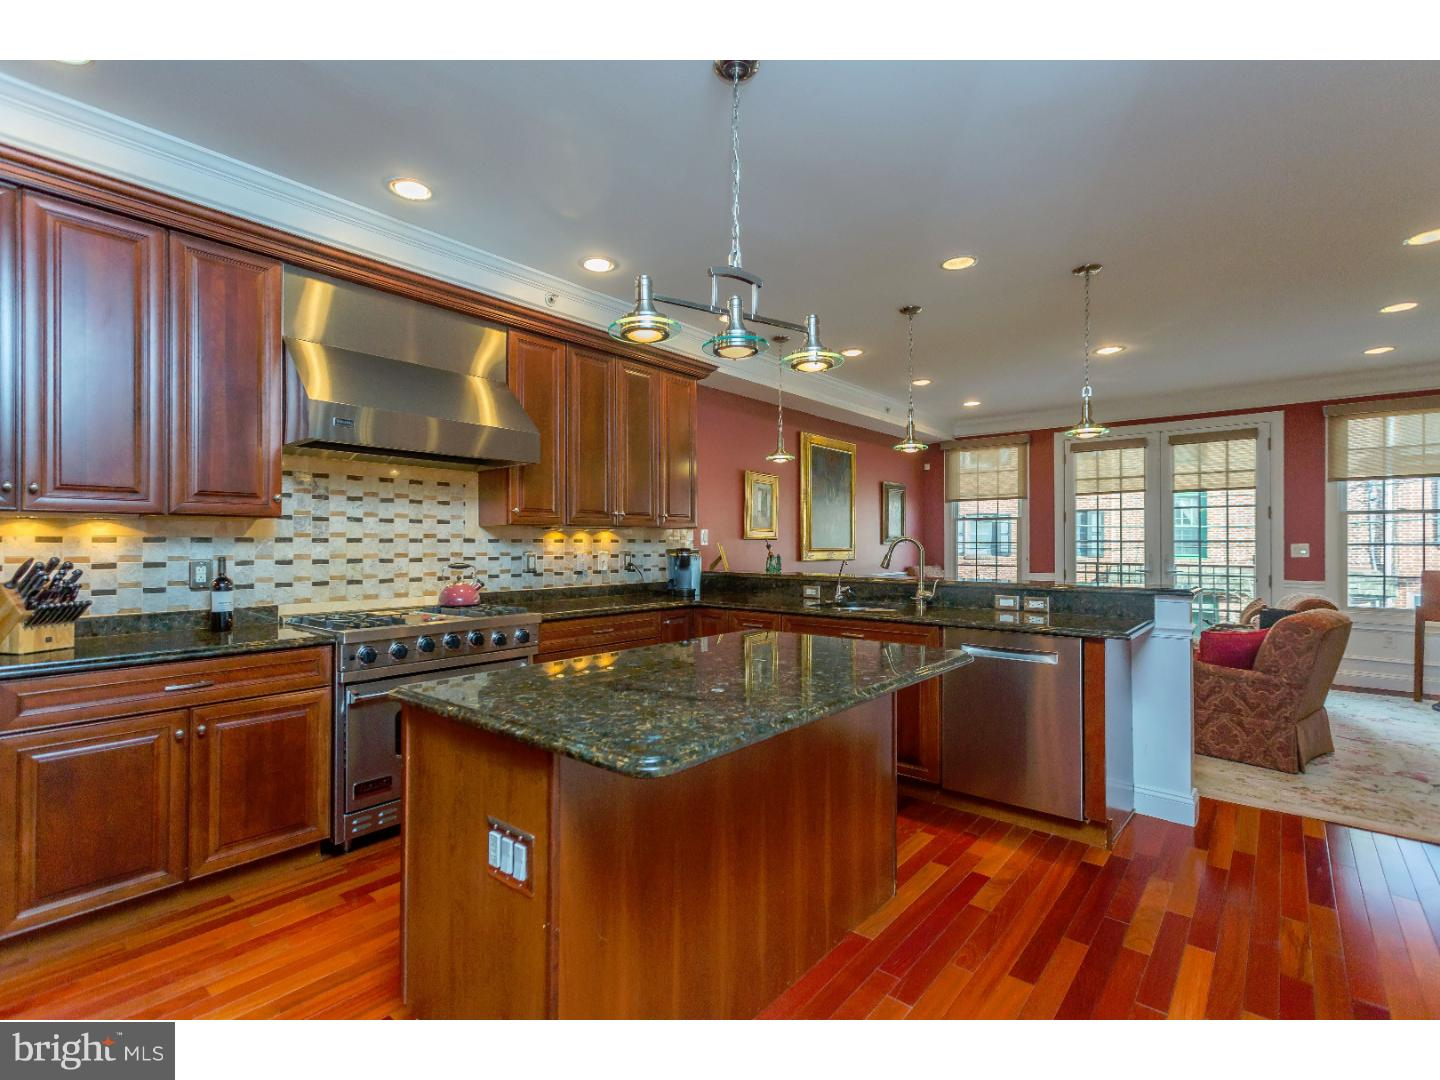 Three bedroom plus den, 4 1/2 bath 3300 plus sq ft home with GARAGE PARKING, and ELEVATOR is now FOR SALE in the heart of Queen Village. This sun splashed residence boasts a fantastic second floor with off the charts living, and dining area. All open kitchen with GRANITE counter tops, HIGH end stainless steel appliances, island, and HUGE breakfast bar; all over looking a warm, and romantic living area with Juliet balcony and wonderful Eastern Exposure. On this level, you will also find a FORMAL DINING ROOM, with French doors leading out to an enormous deck. A wonderful extension of your living space 6 MONTHS out of the year. Third floor consists of two very well proportioned bedrooms, and two additional large MARBLE and TILE baths. Your Master suite level is AWESOME! Incredible master bedroom suite with fireplace,  PRIVATE deck, enormous MARBLE bath with double sinks, glass shower, and WHIRLPOOL TUB. For the clothes lover, there is a very large WALK-IN closet. With HARDWOOD floors throughout, ELEVATOR running from your finished basement to Master Suite , all important garage, plus additional in home office/den with full bath, and the third outside space, makes this GRACIOUS and SPACIOUS home a MUST SEE!